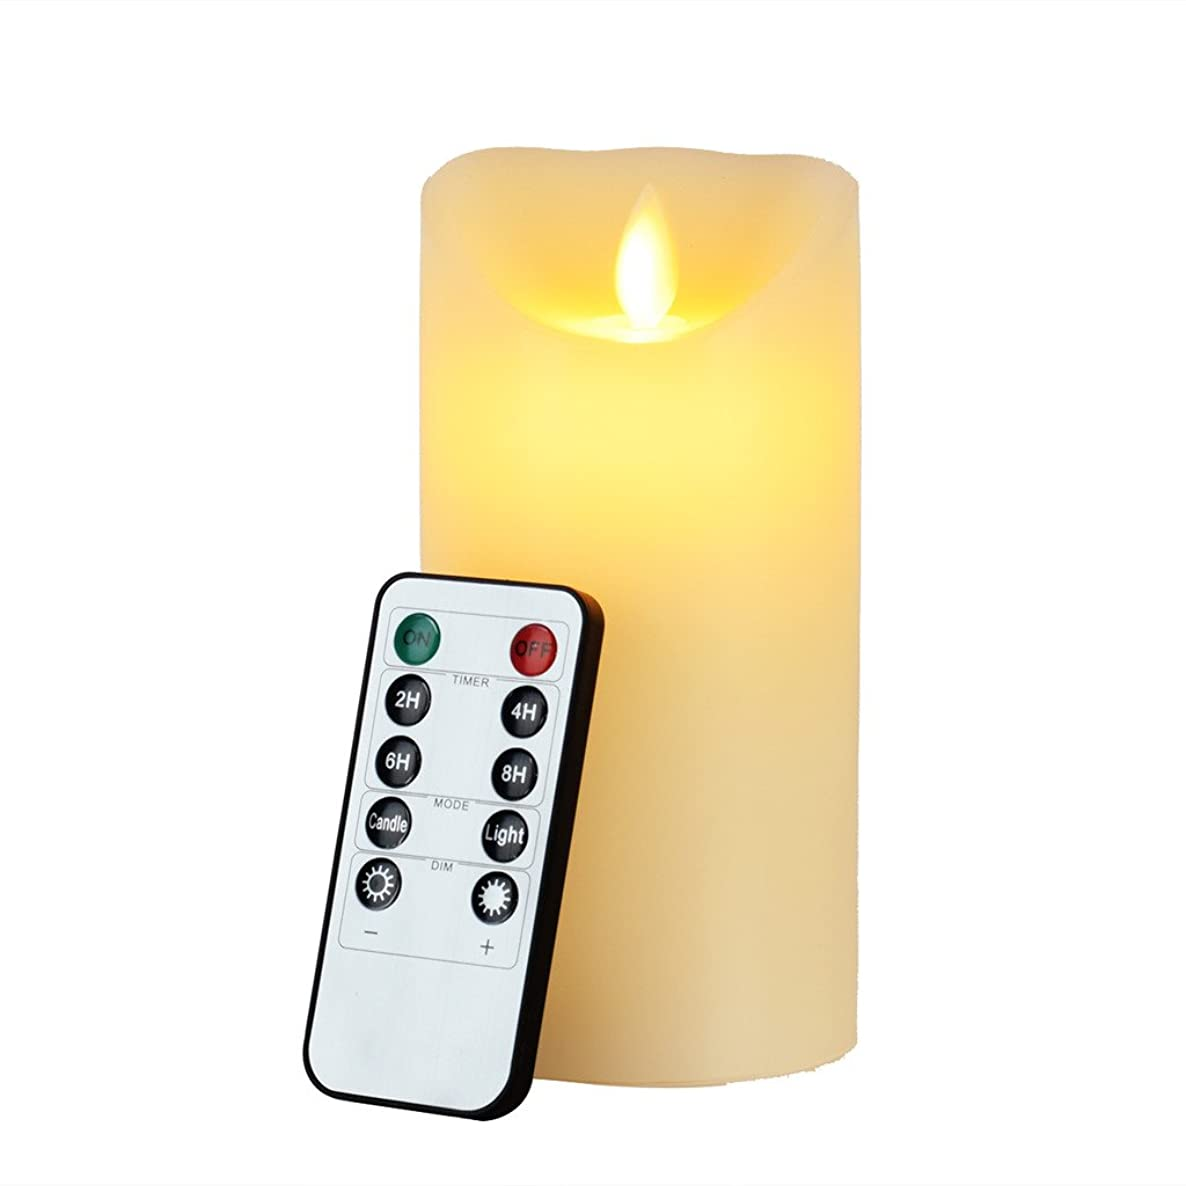 Flameless Candle, Eyourlife Led Candles 6 inch Flameless Candles Ivory Christmas Candle Electric Flameless Flickering Candle Remote Control with Timer Battery Operated Pillar Candles